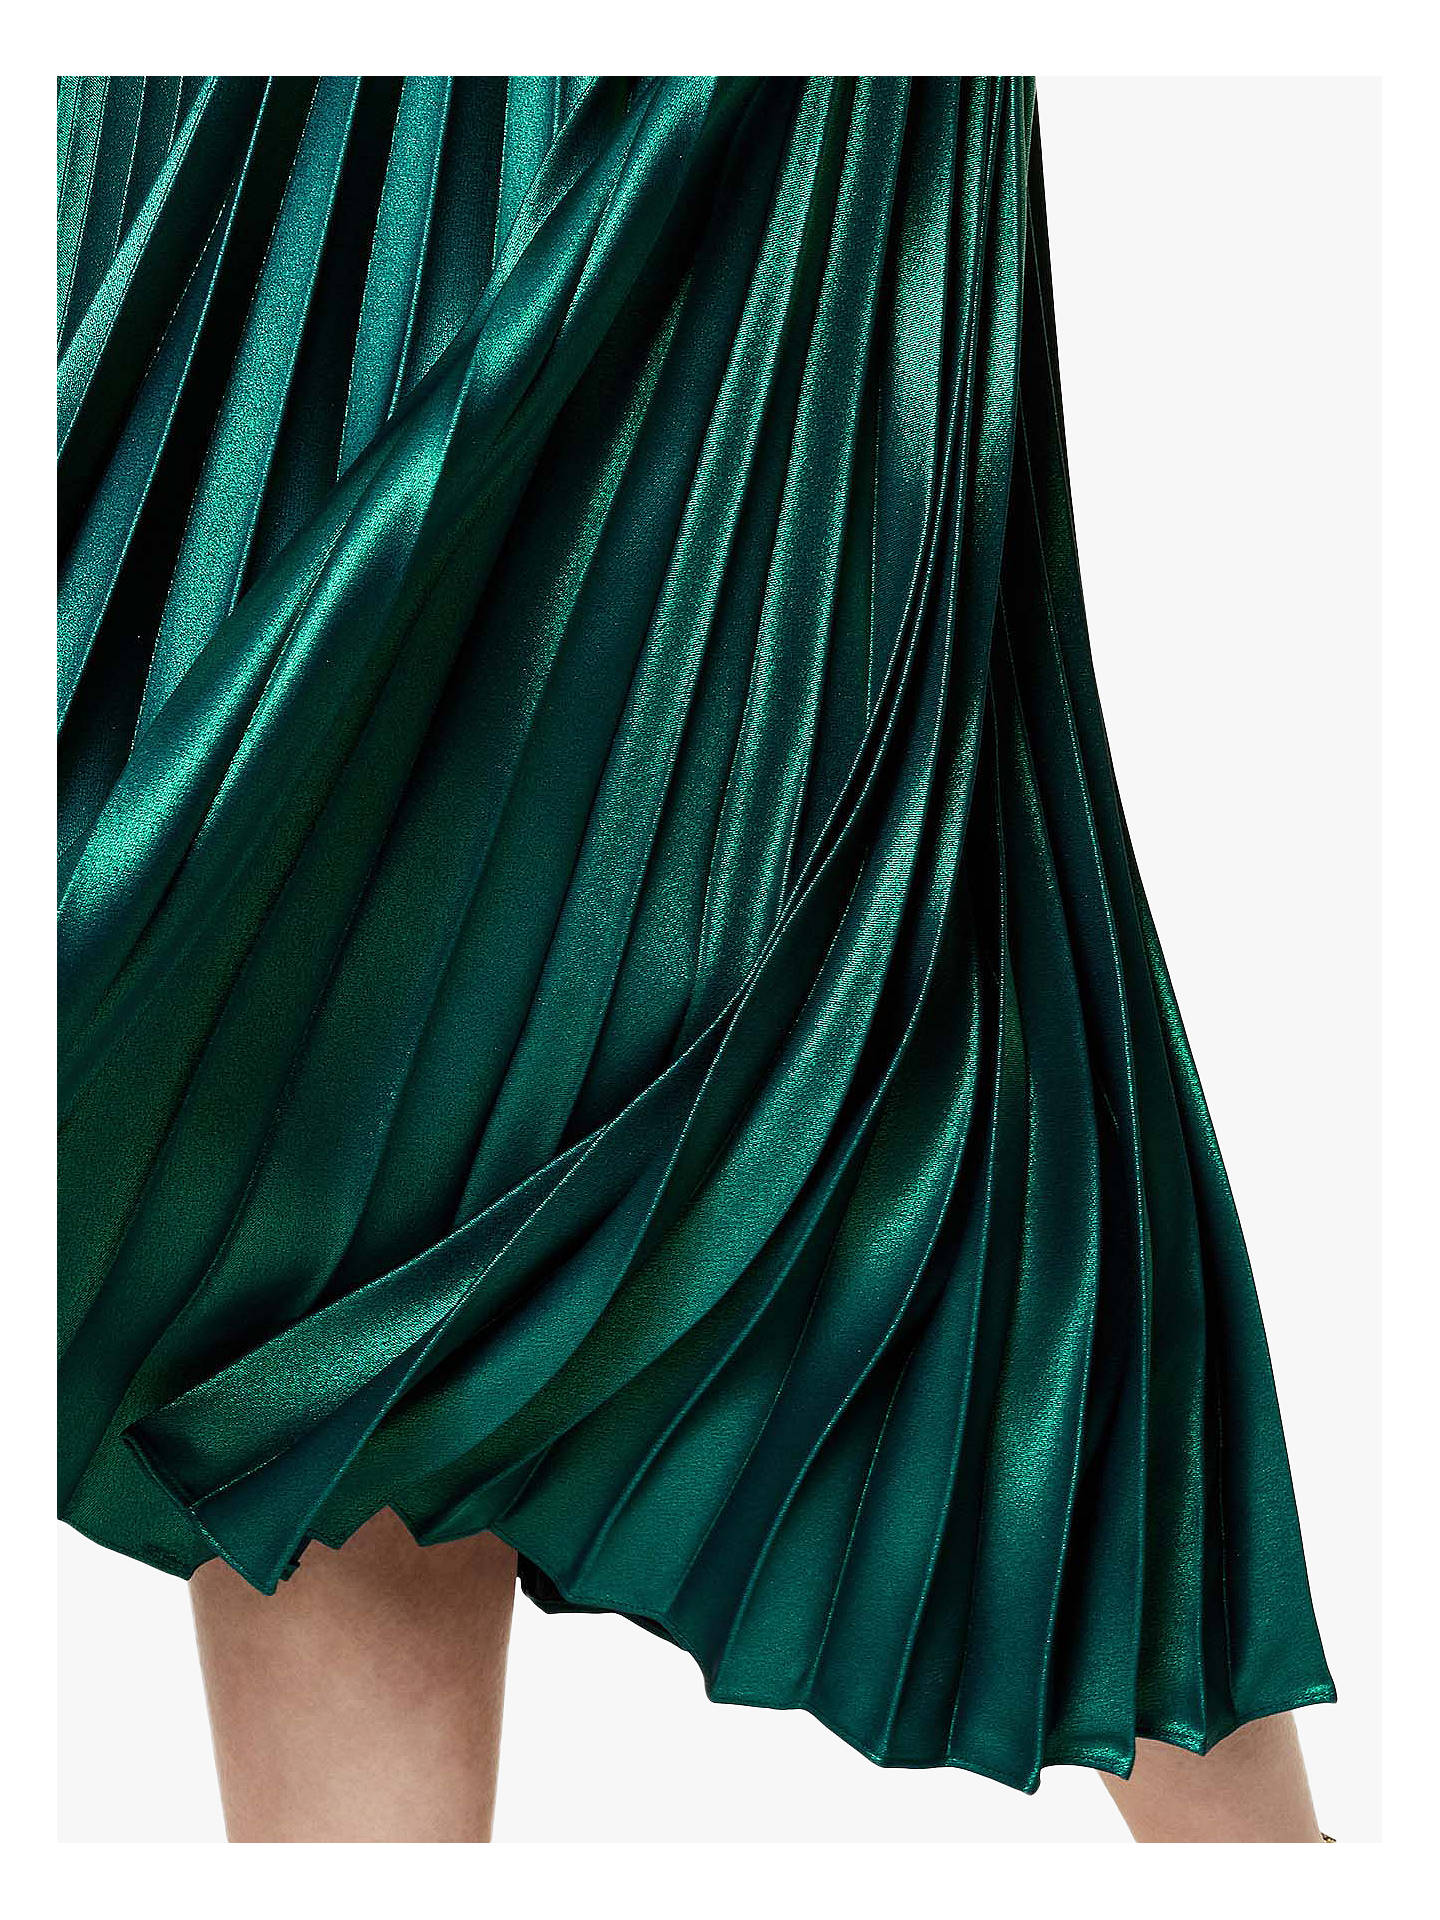 Karen Millen Metallic Pleated Skirt, Dark Green at John ...